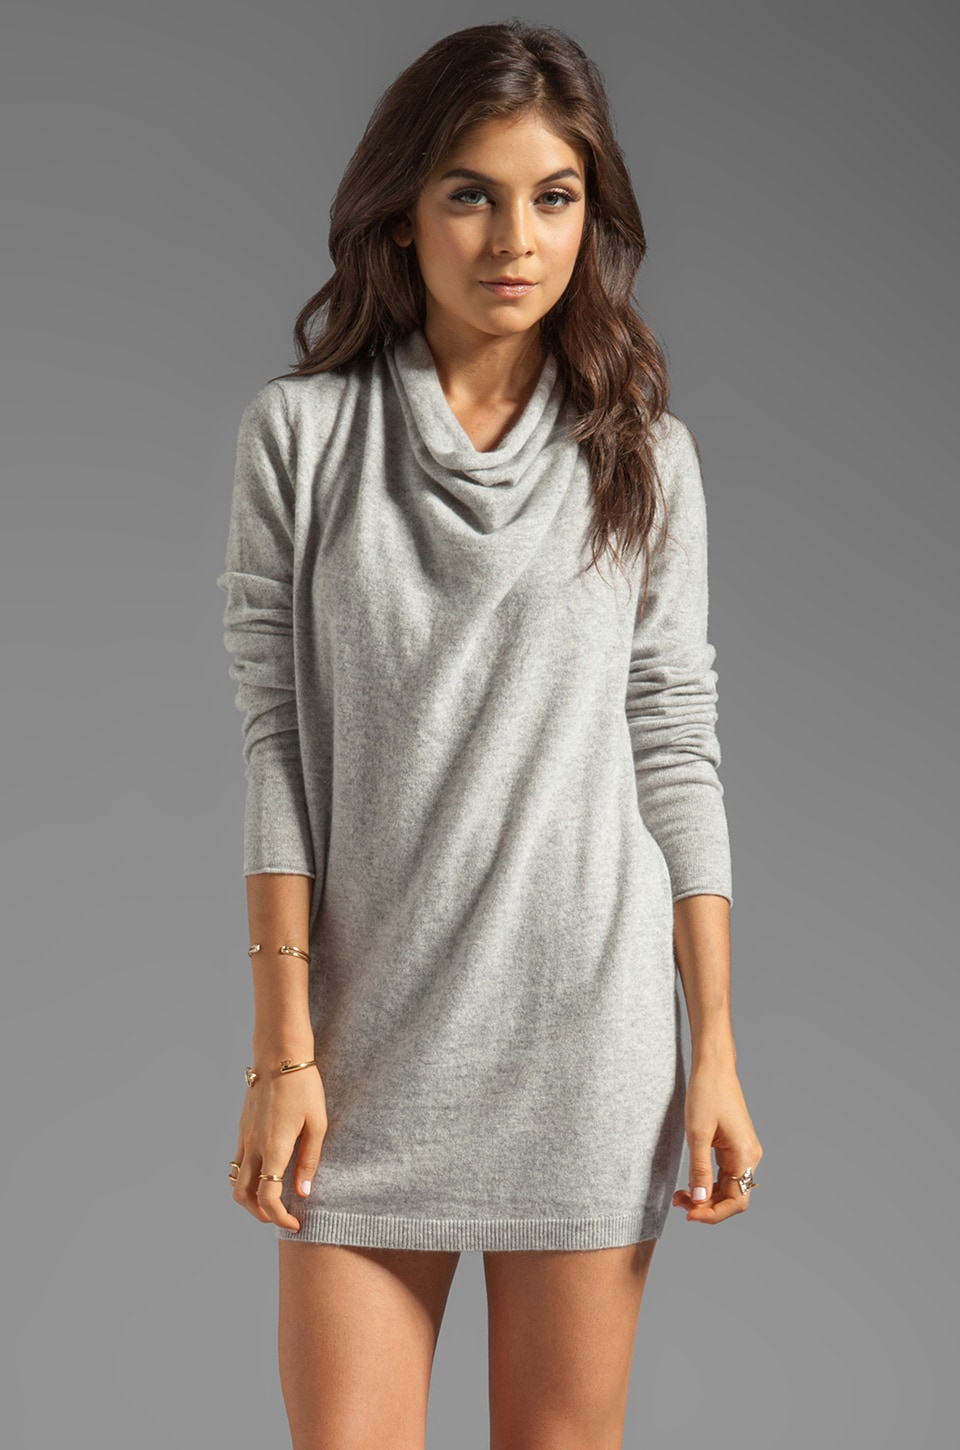 DemyLee Stella Cashmere Pullover in Light Heather Grey